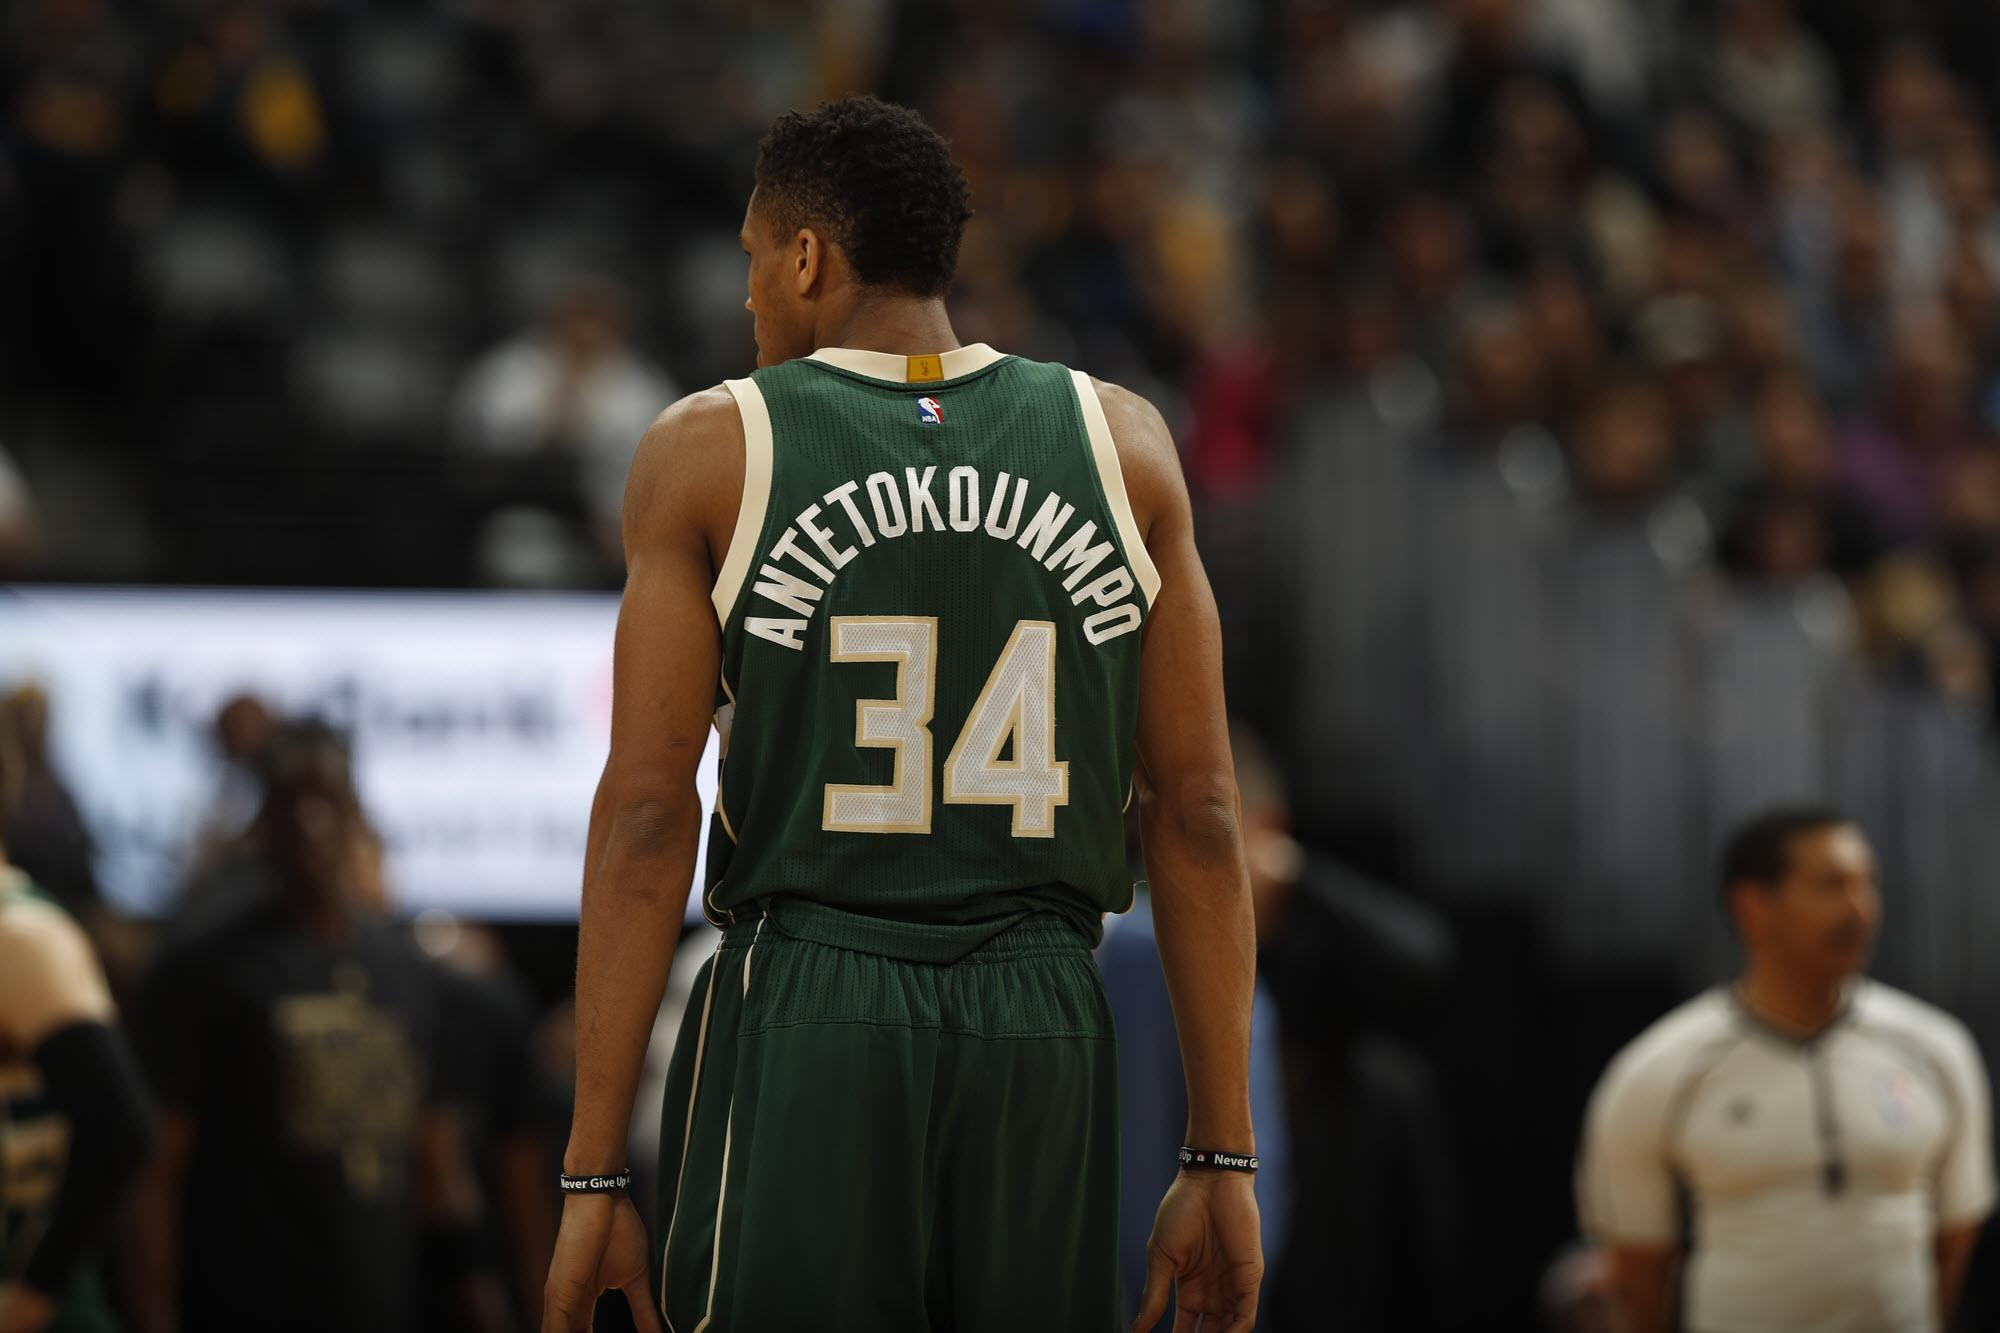 A Milwaukee restaurant issued a public apology Sunday night after not accommodating Bucks AllStar Giannis Antetokounmpo in a timely fashion after the team